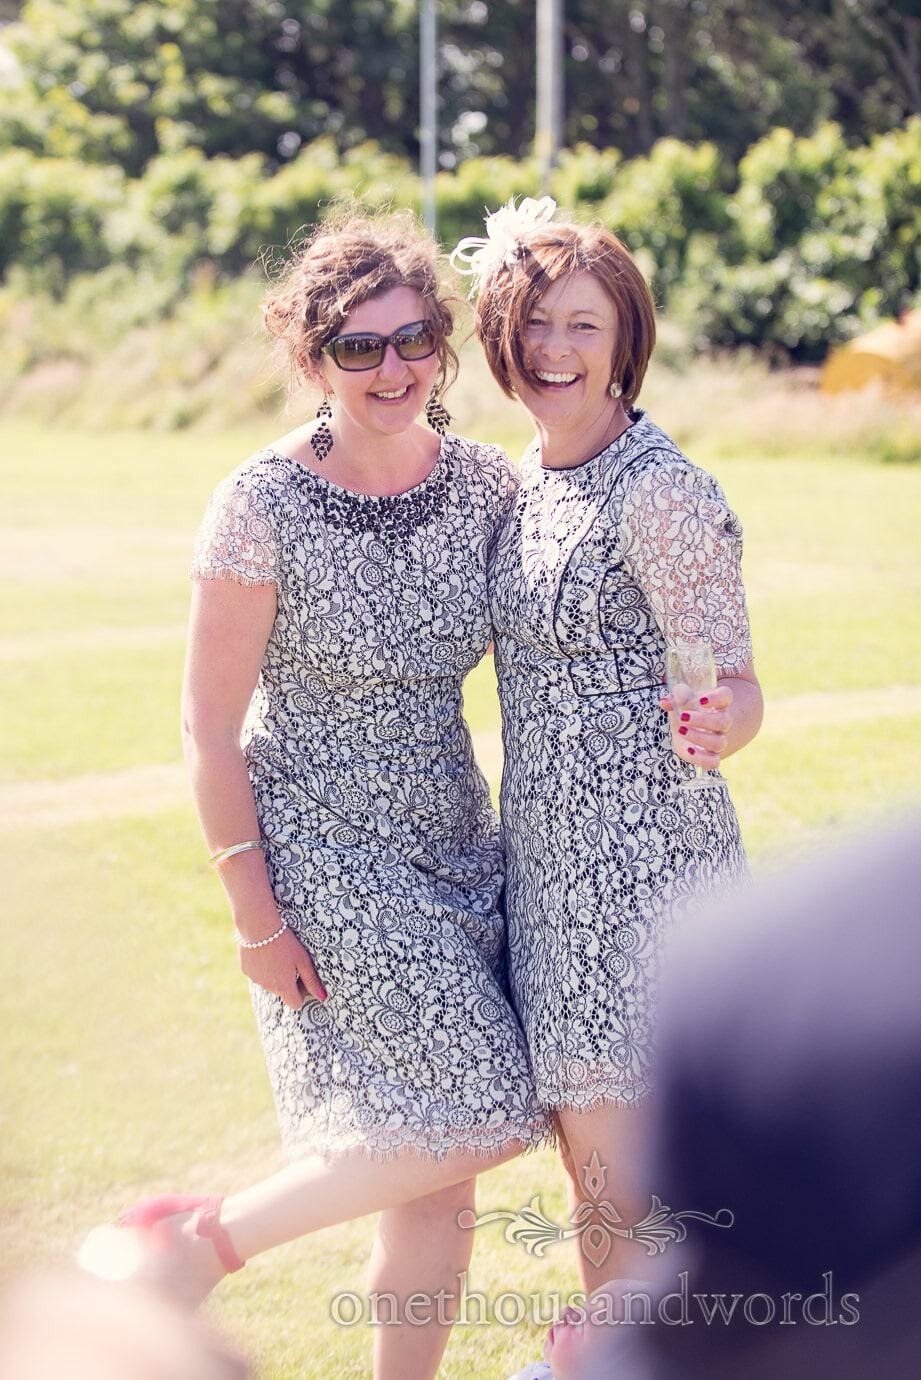 Wedding guests in very similar black and white dresses